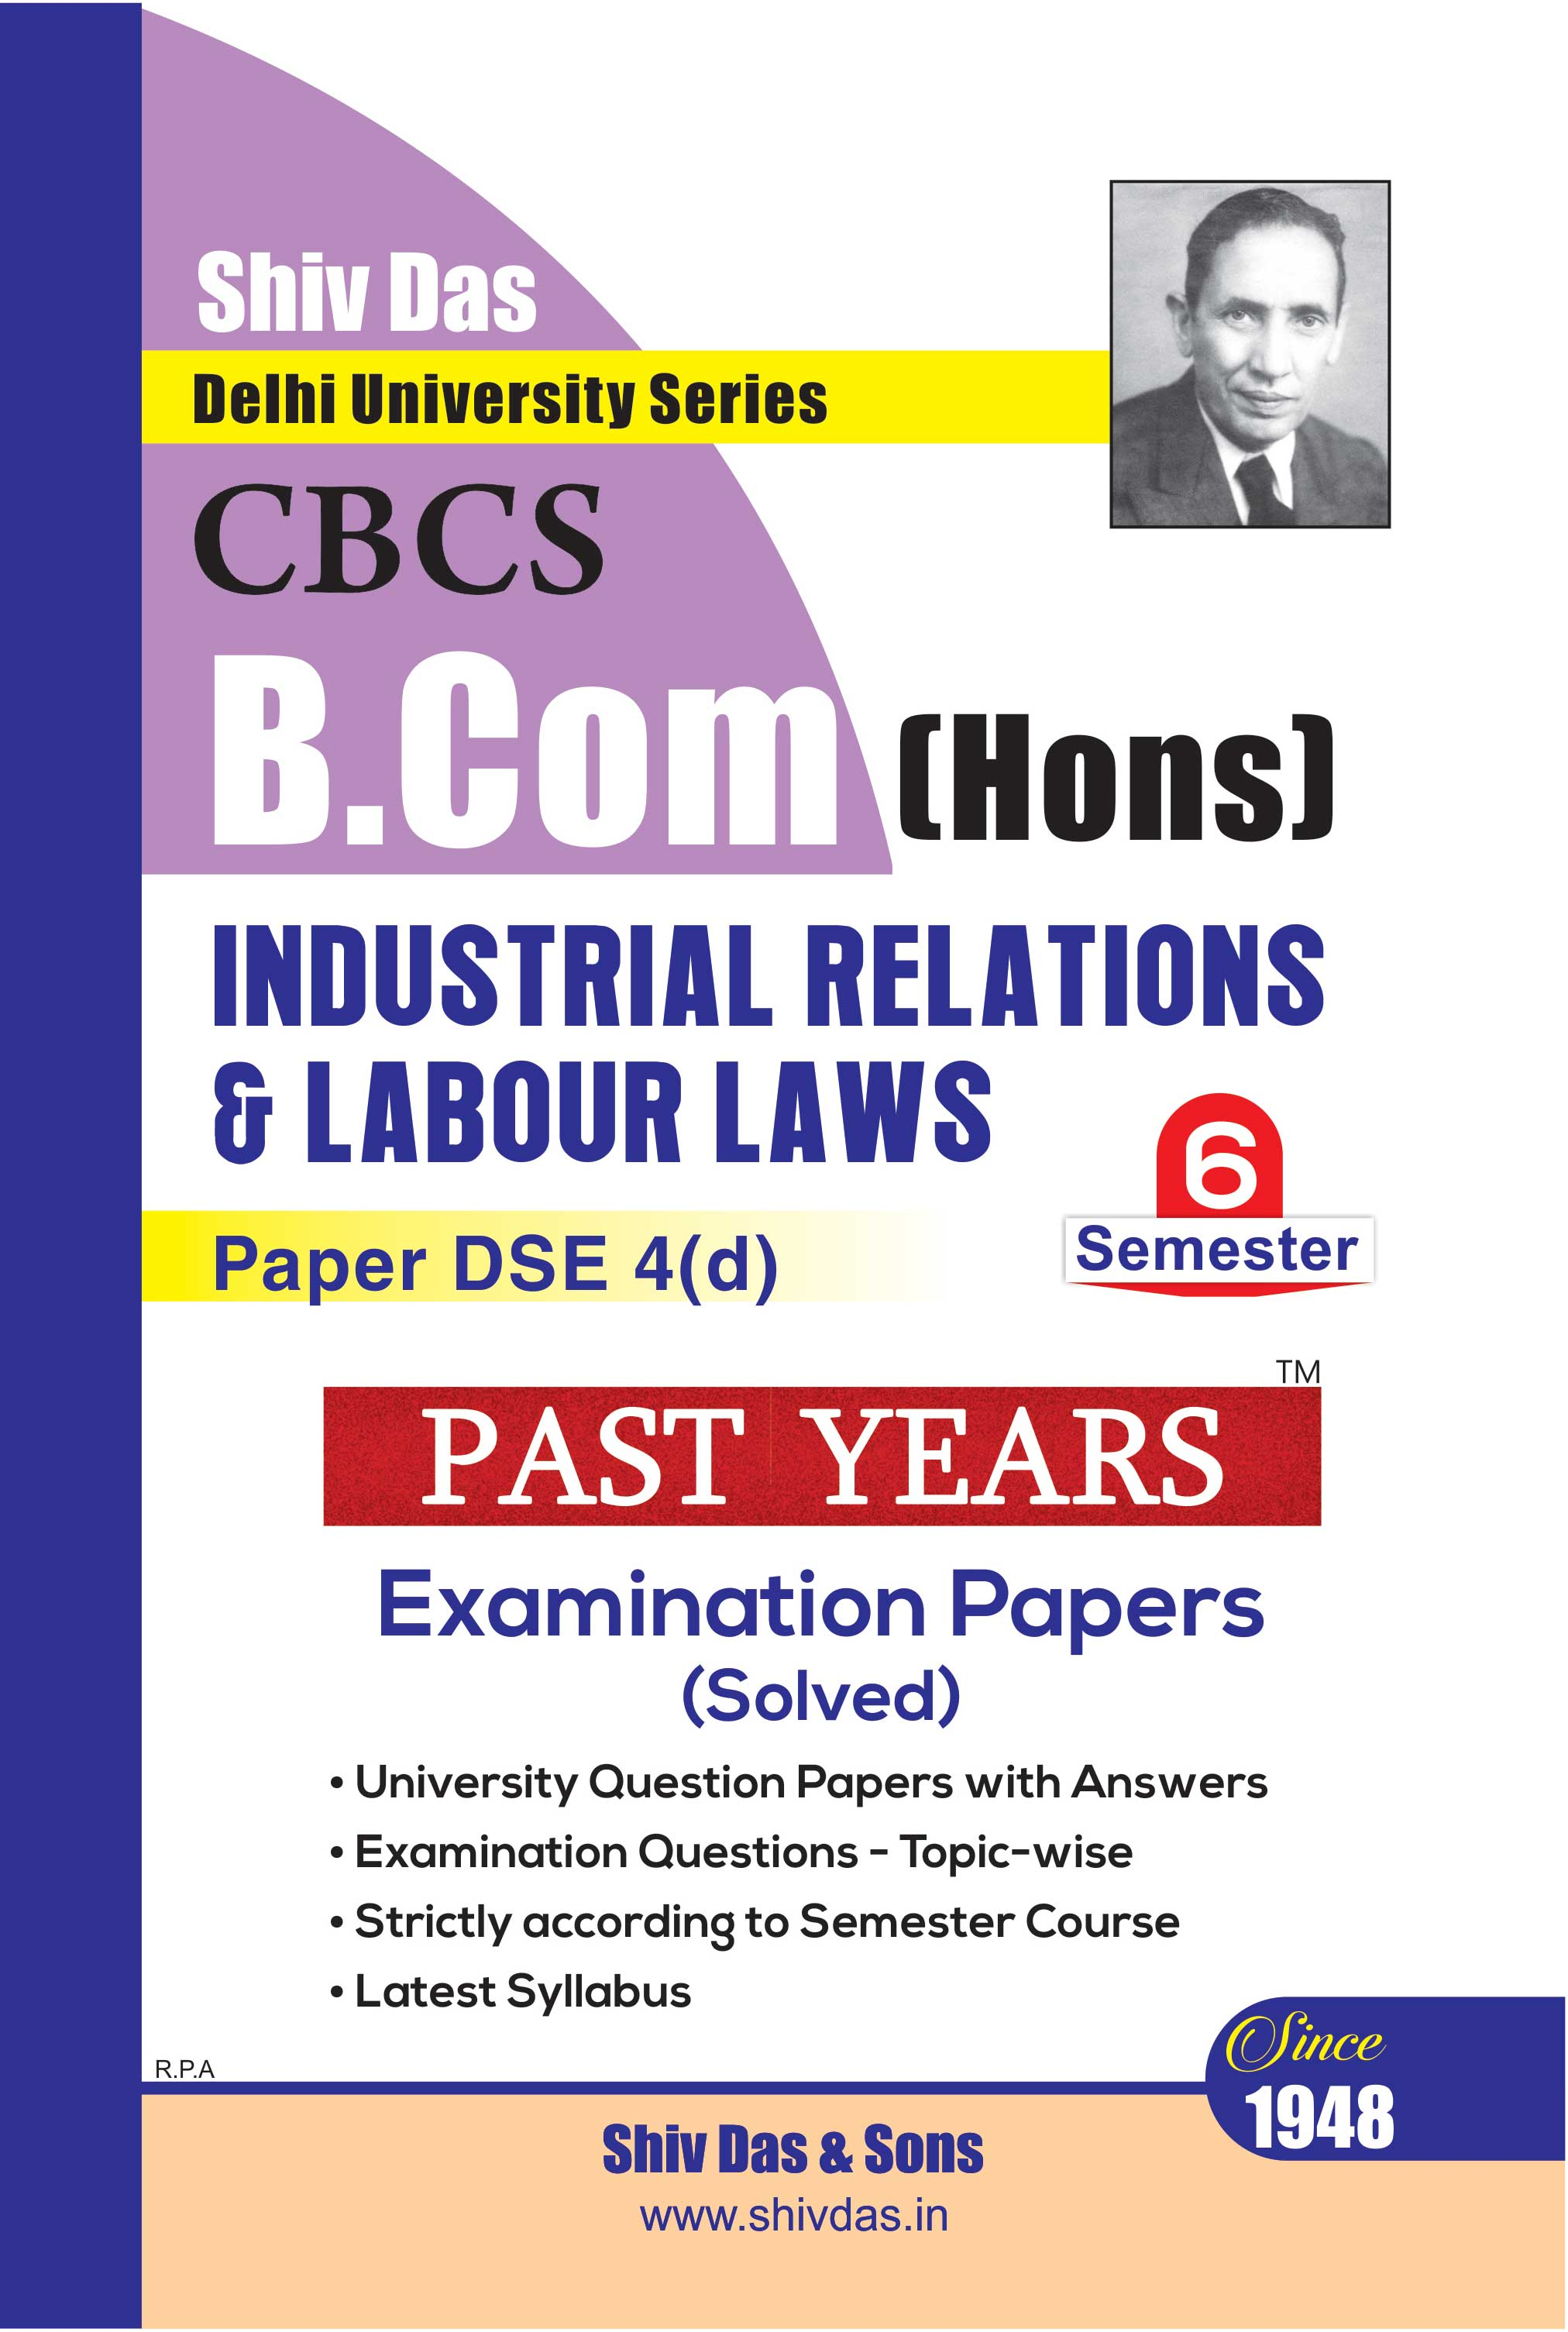 Industrial Relations & Labour Laws for B.Com Hons Semester 6 for Delhi University by Shiv Das